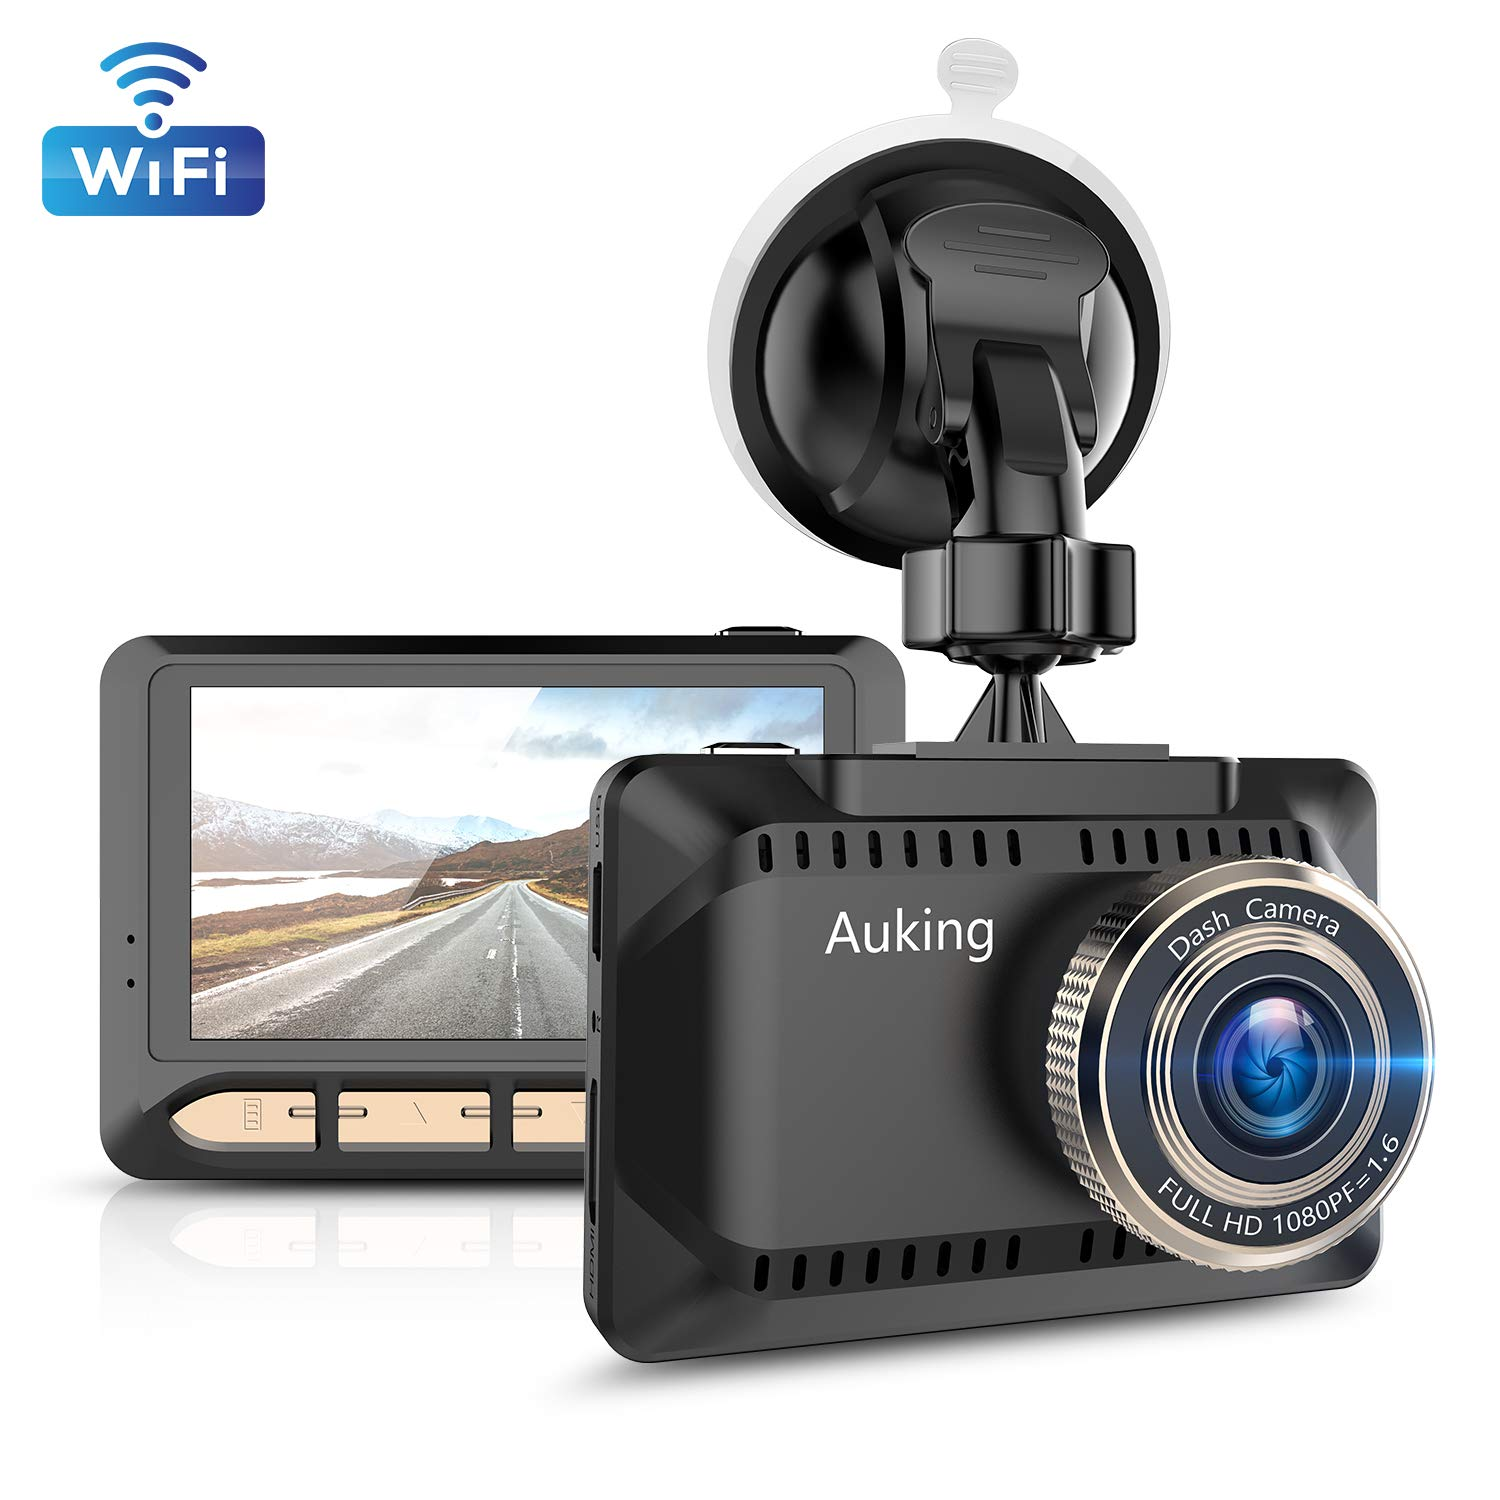 AuKing WiFi Dash Cam 1080P Full HD Dash Camera for Cars 2.45 Inch IPS Screen Car Camera Driving Recorder with Phone APP, G-Sensor, 170° Wide Angle, WDR, Loop Recording, Night Vision, Parking Monitor by AuKing